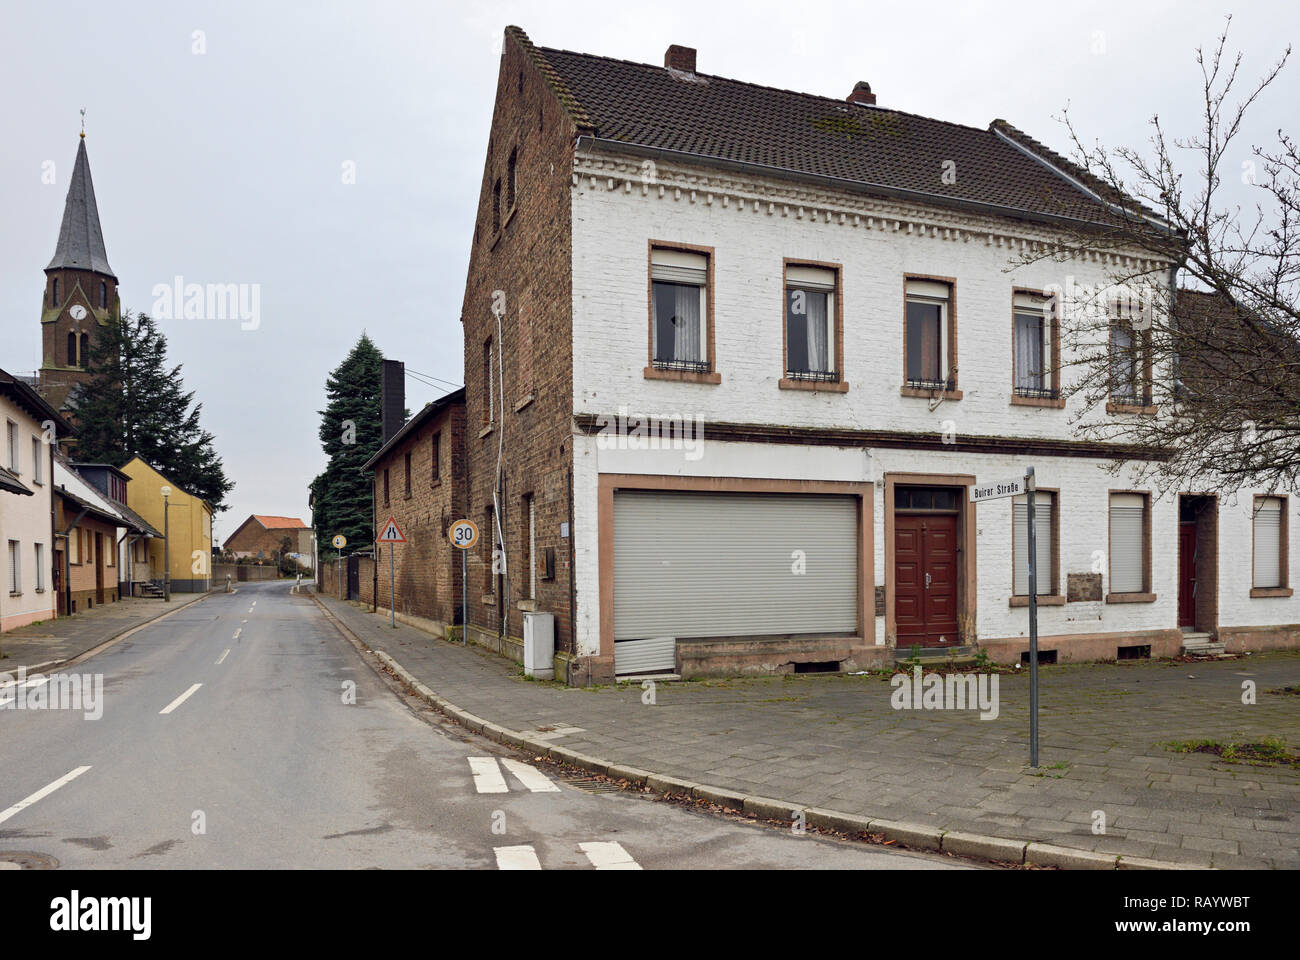 December 2018, Manheim, Kerpen-Manheim, Nordrhein-Westfalen, Germany - vacated Church St. Albertus and abandoned houses after resettlement in preparat - Stock Image